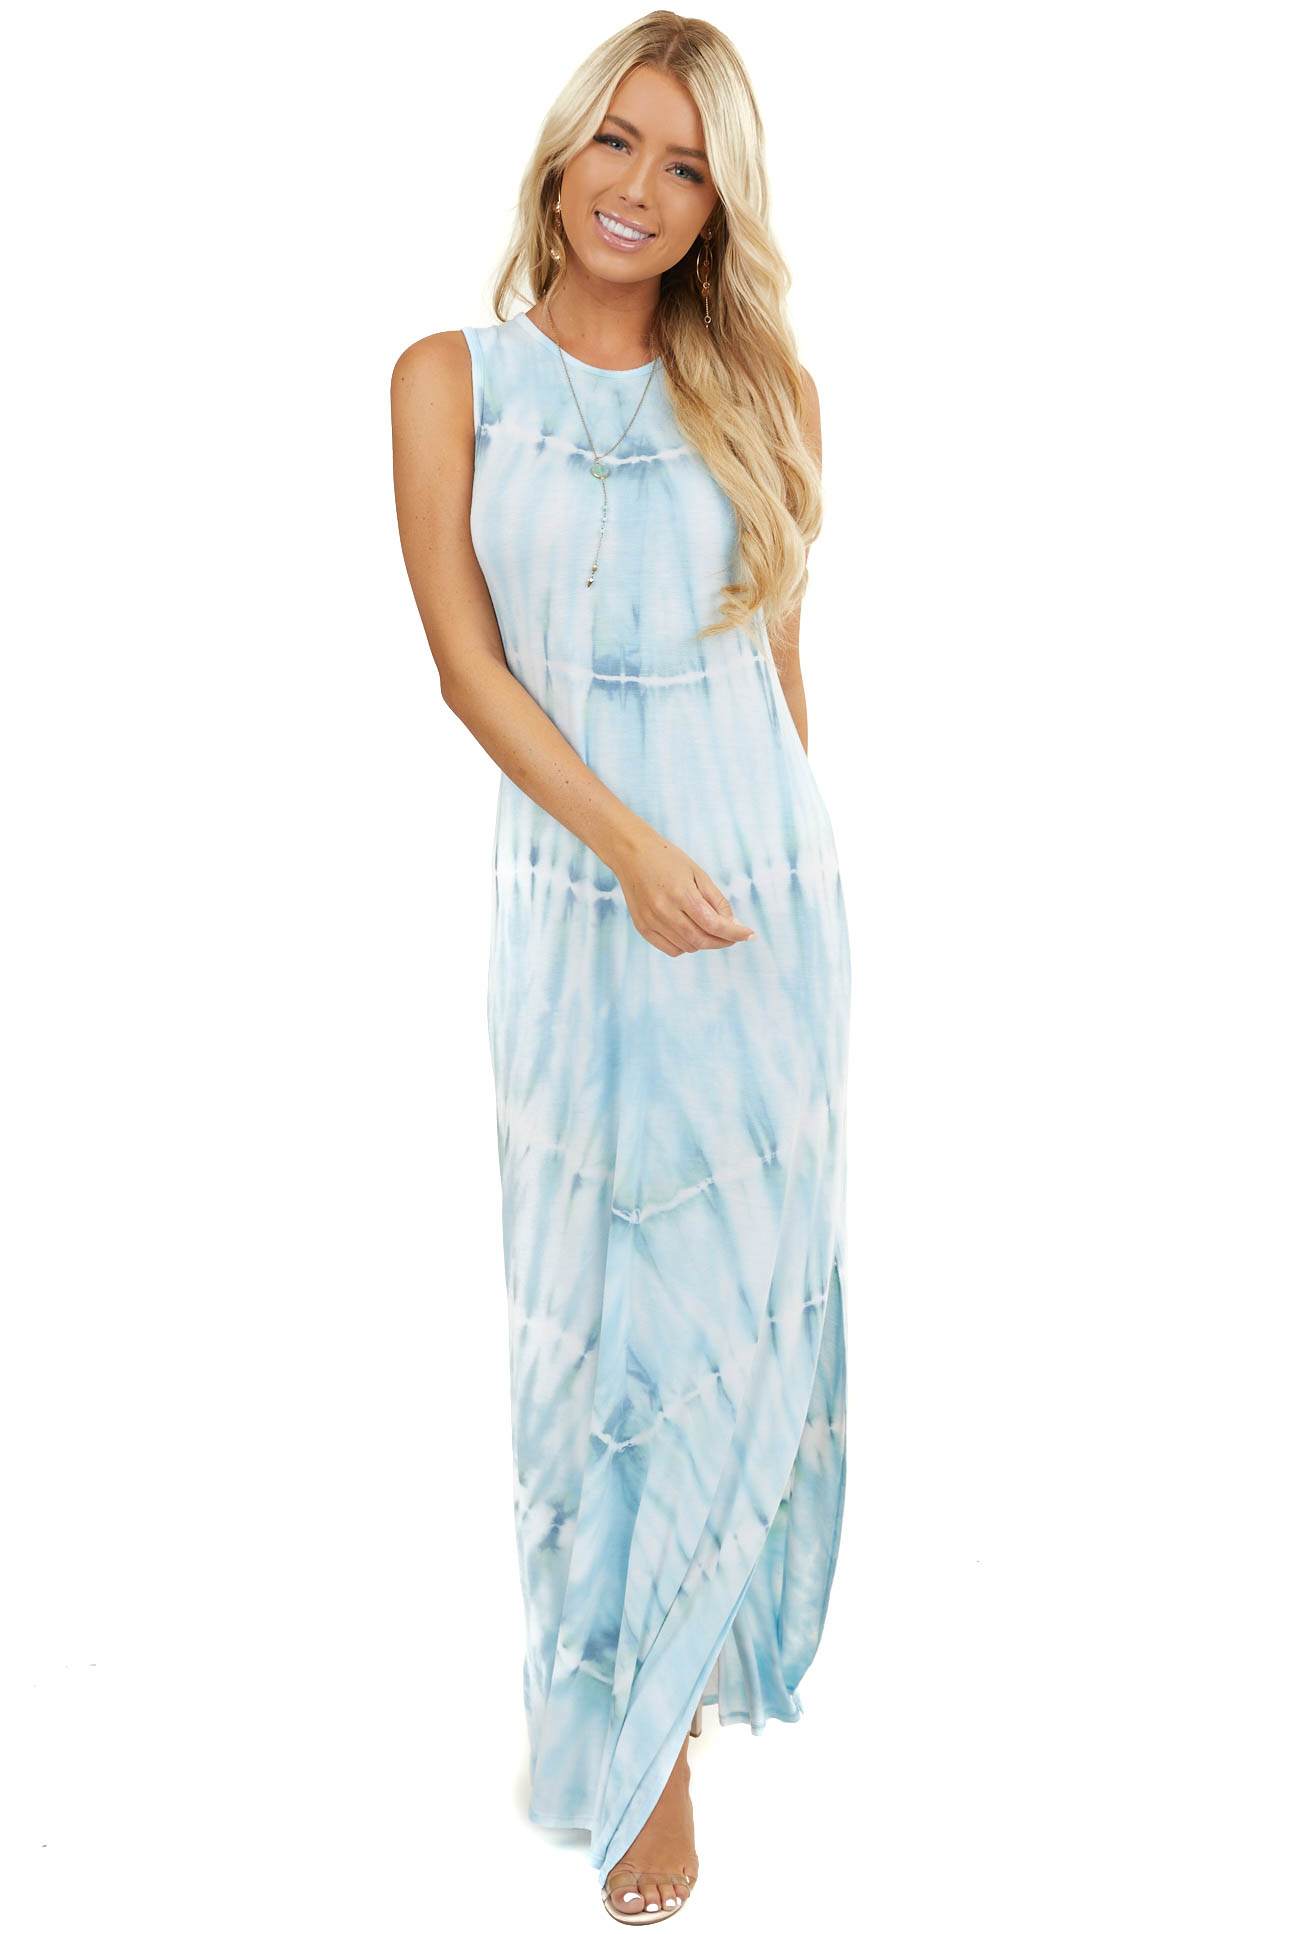 Light Blue Tie Dye Sleeveless Maxi Dress with Side Slits